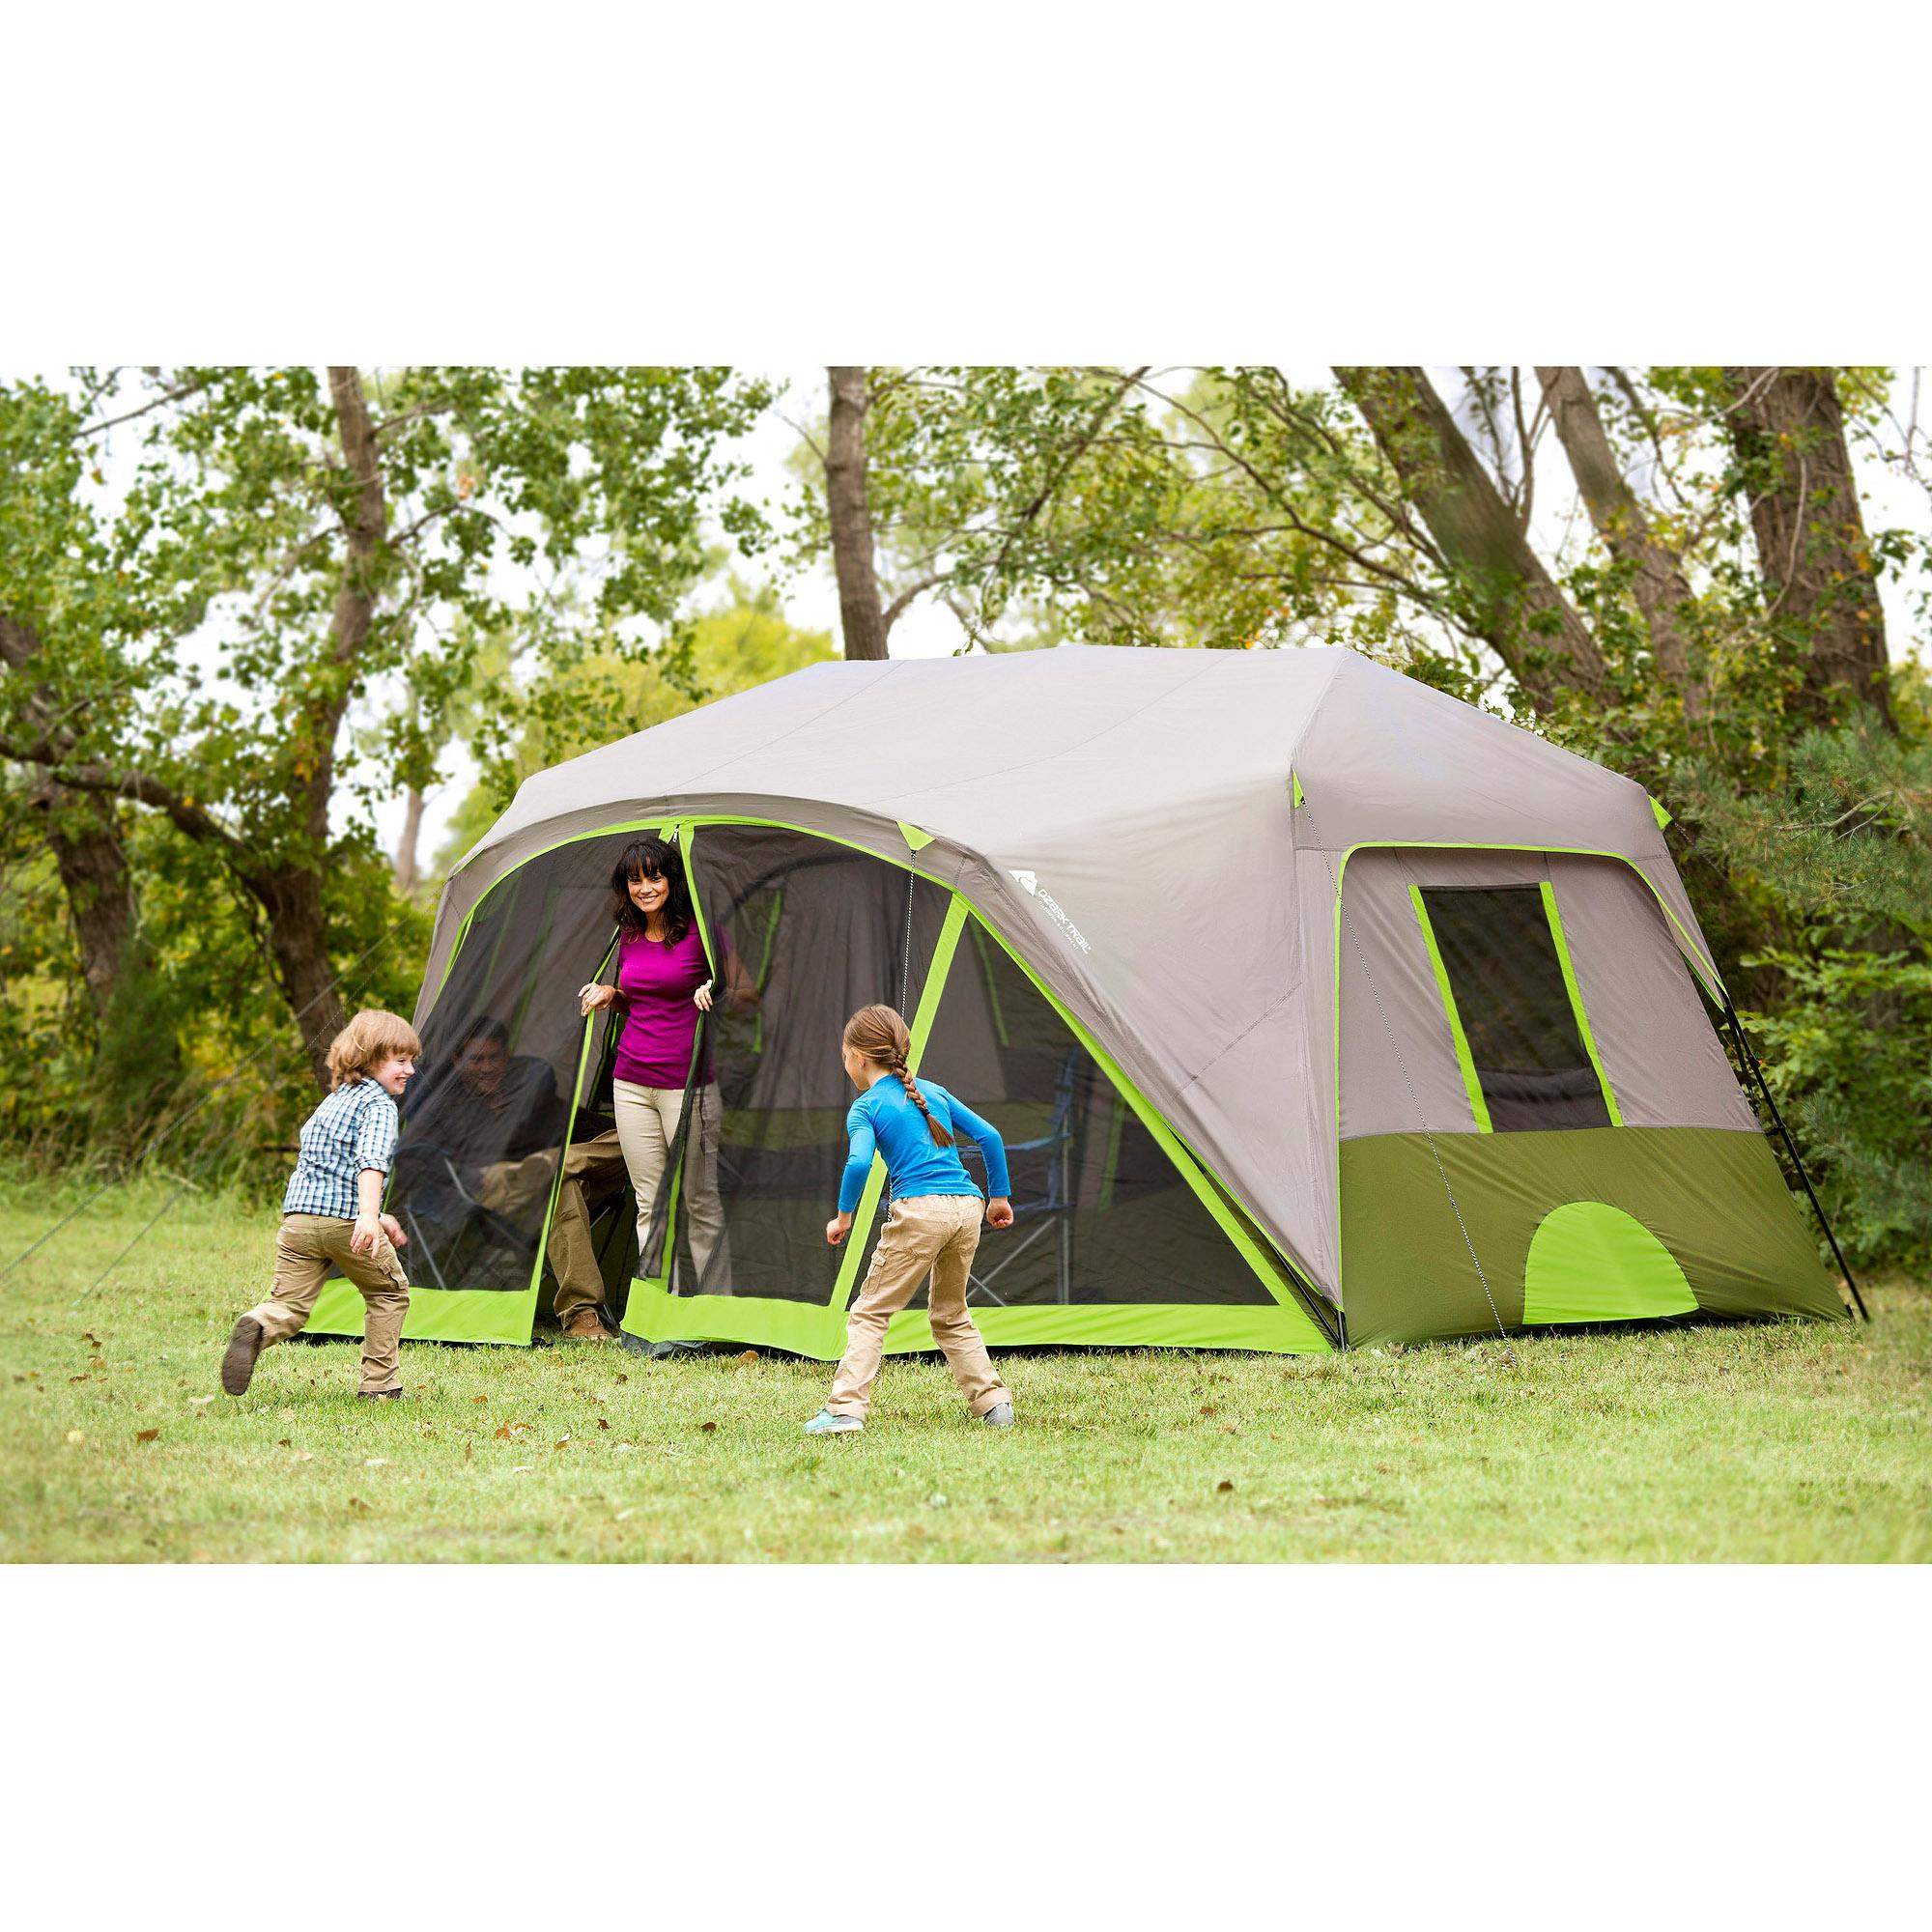 Ozark trail 9 person 2 room instant cabin tent with screen Tent a house